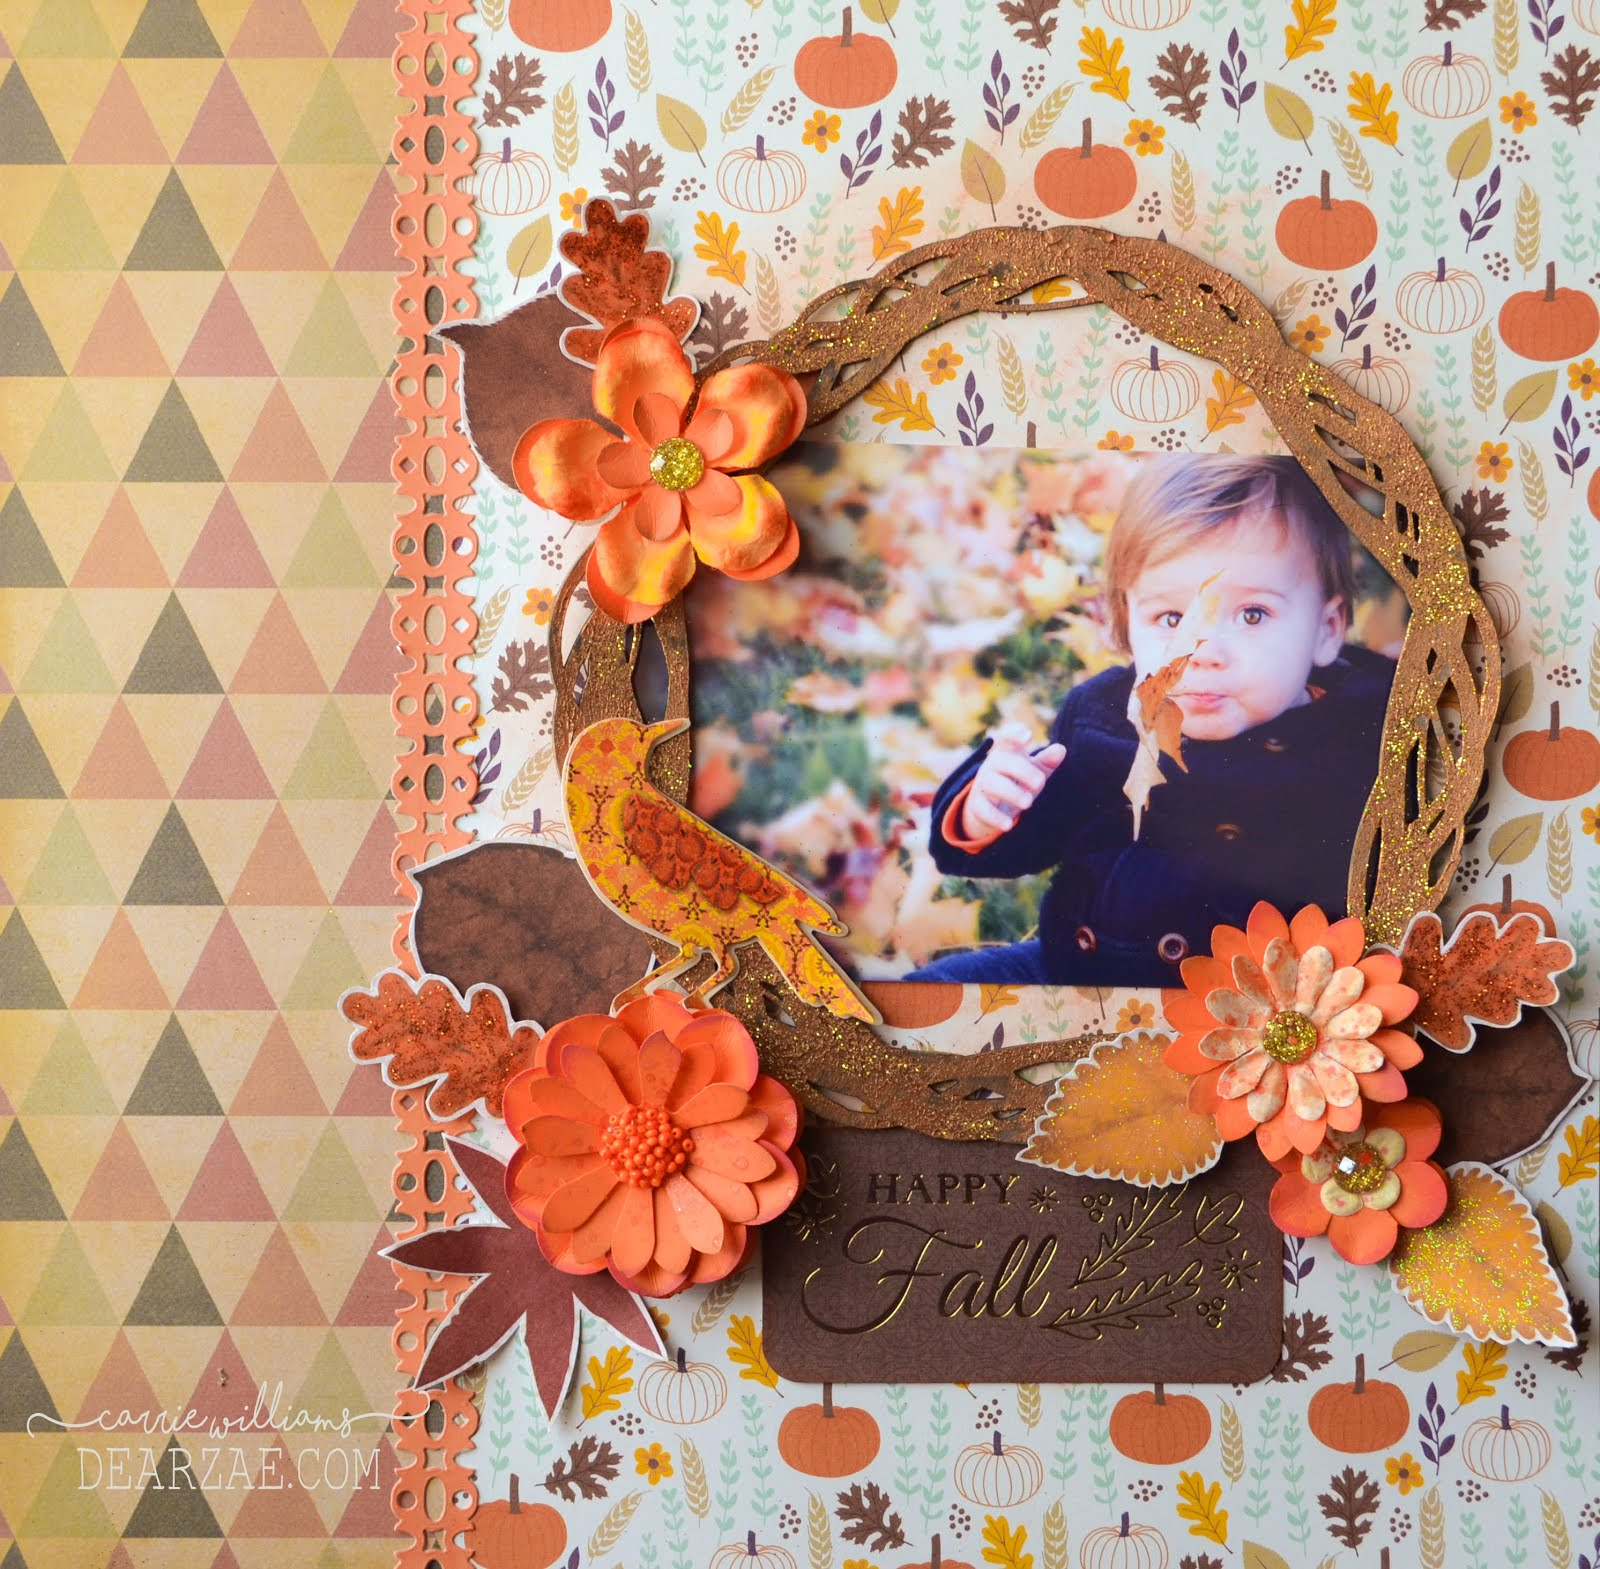 Happy Fall autumn October scrapbook layout in orange and gold with pumpkins, die cuts, handmade flowers, fussy cut leaves, chipboard wreath frame